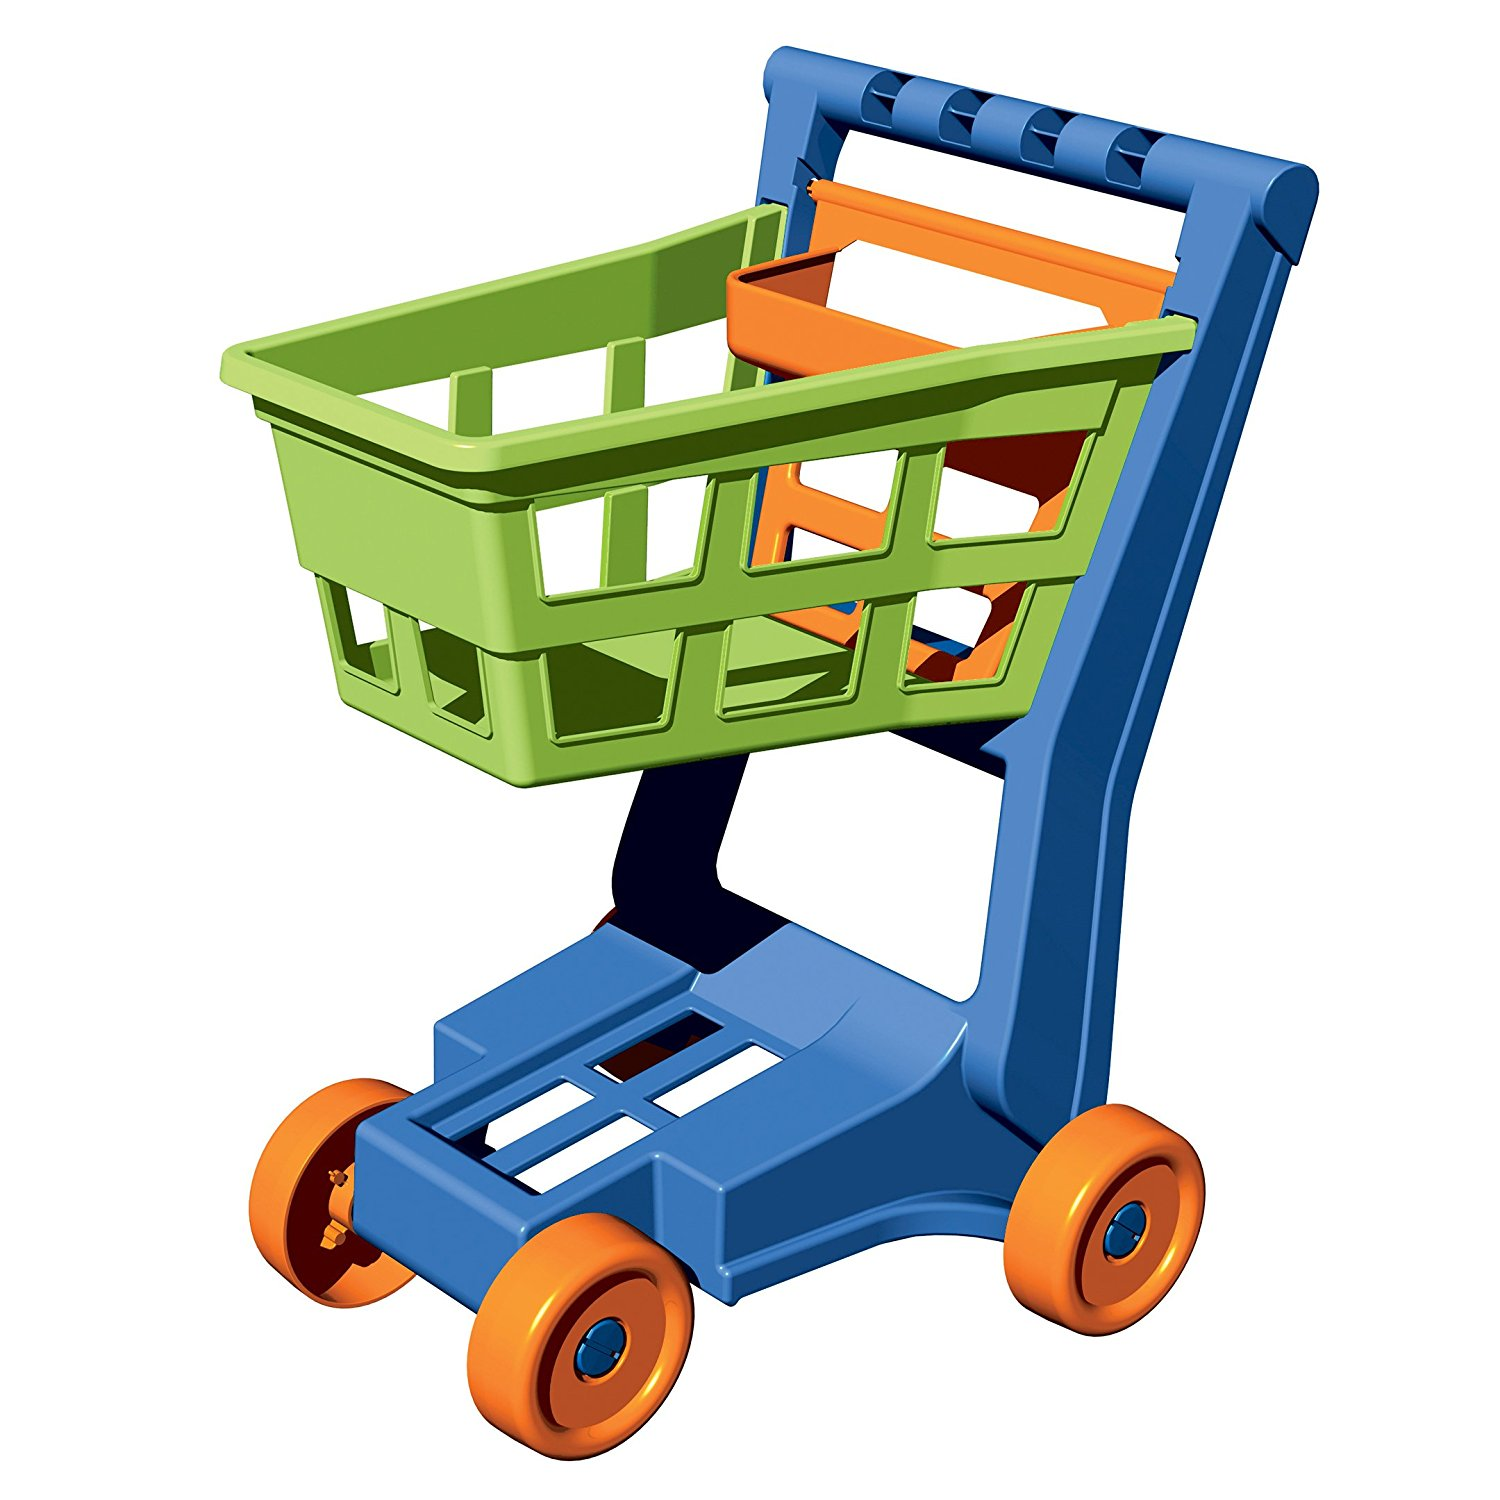 American Plastic Toys Deluxe Shopping Cart